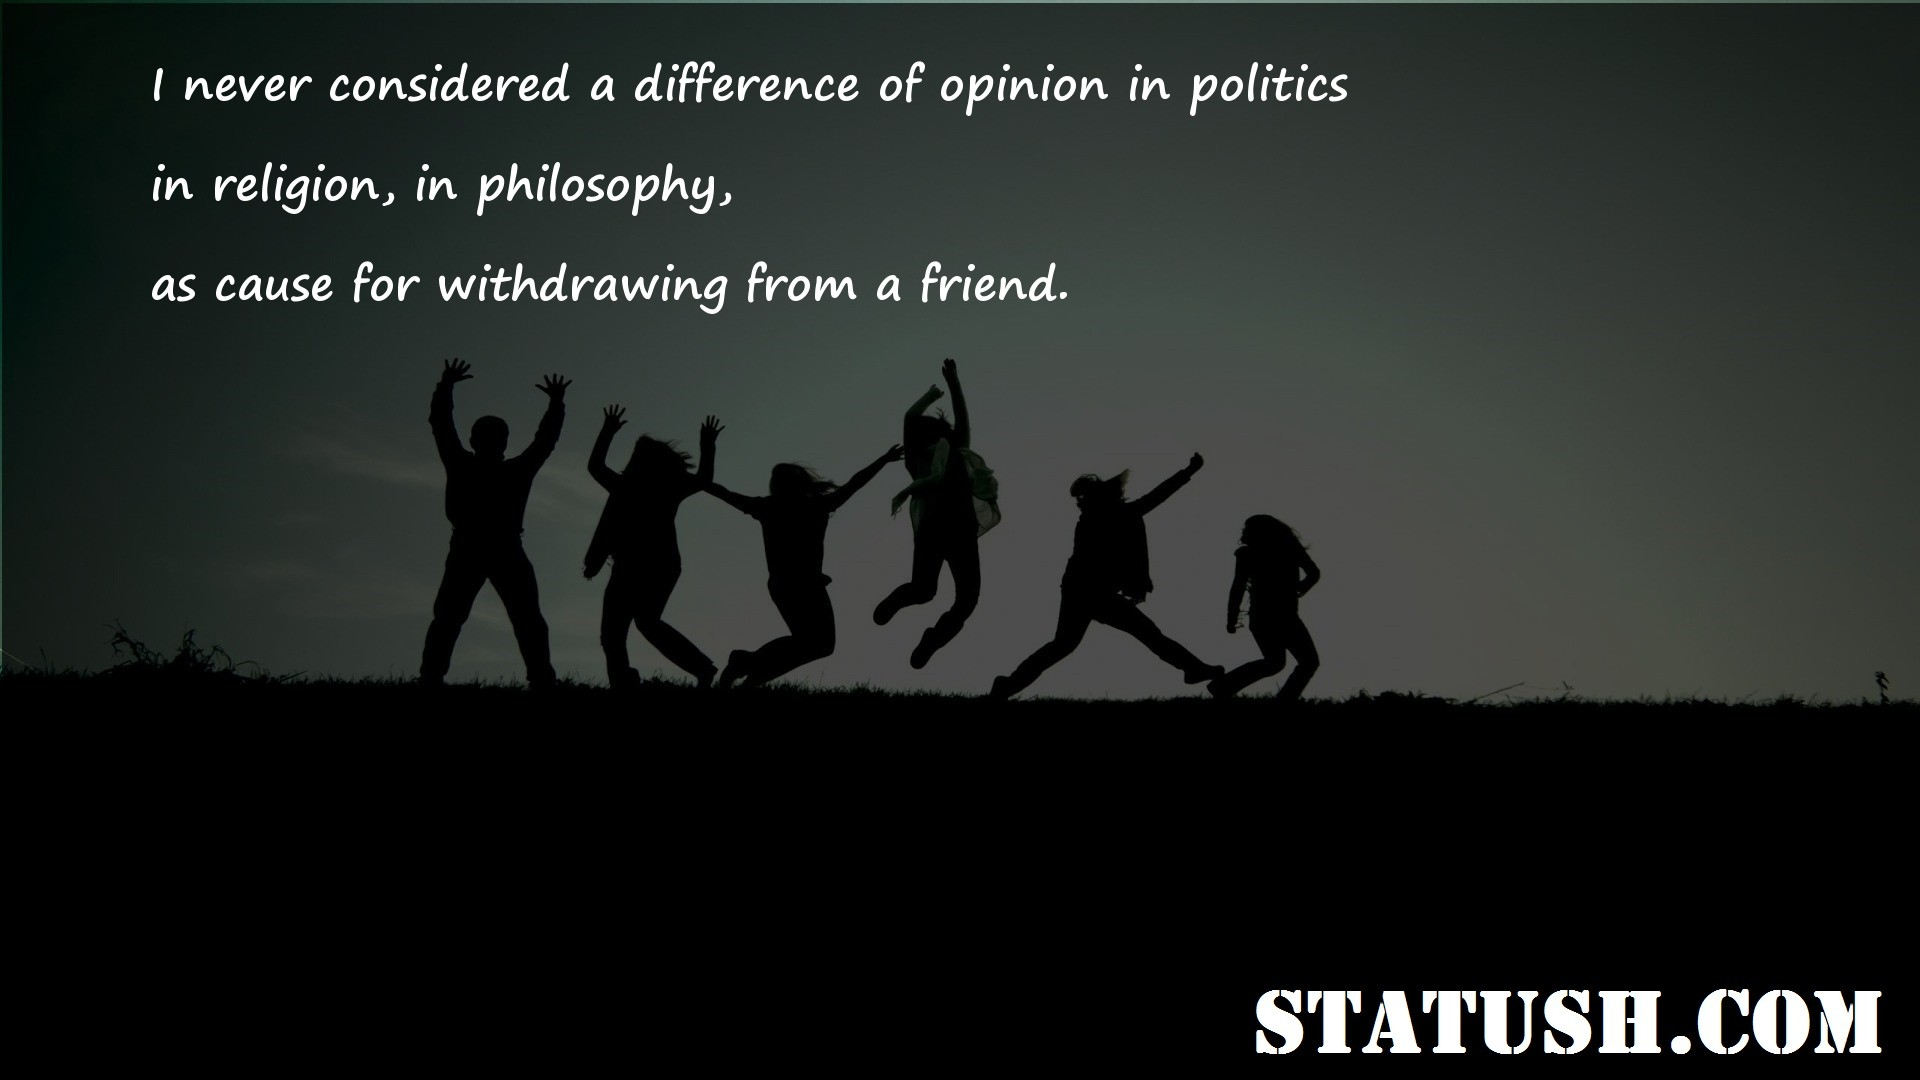 I never considered a difference of opinion in politics